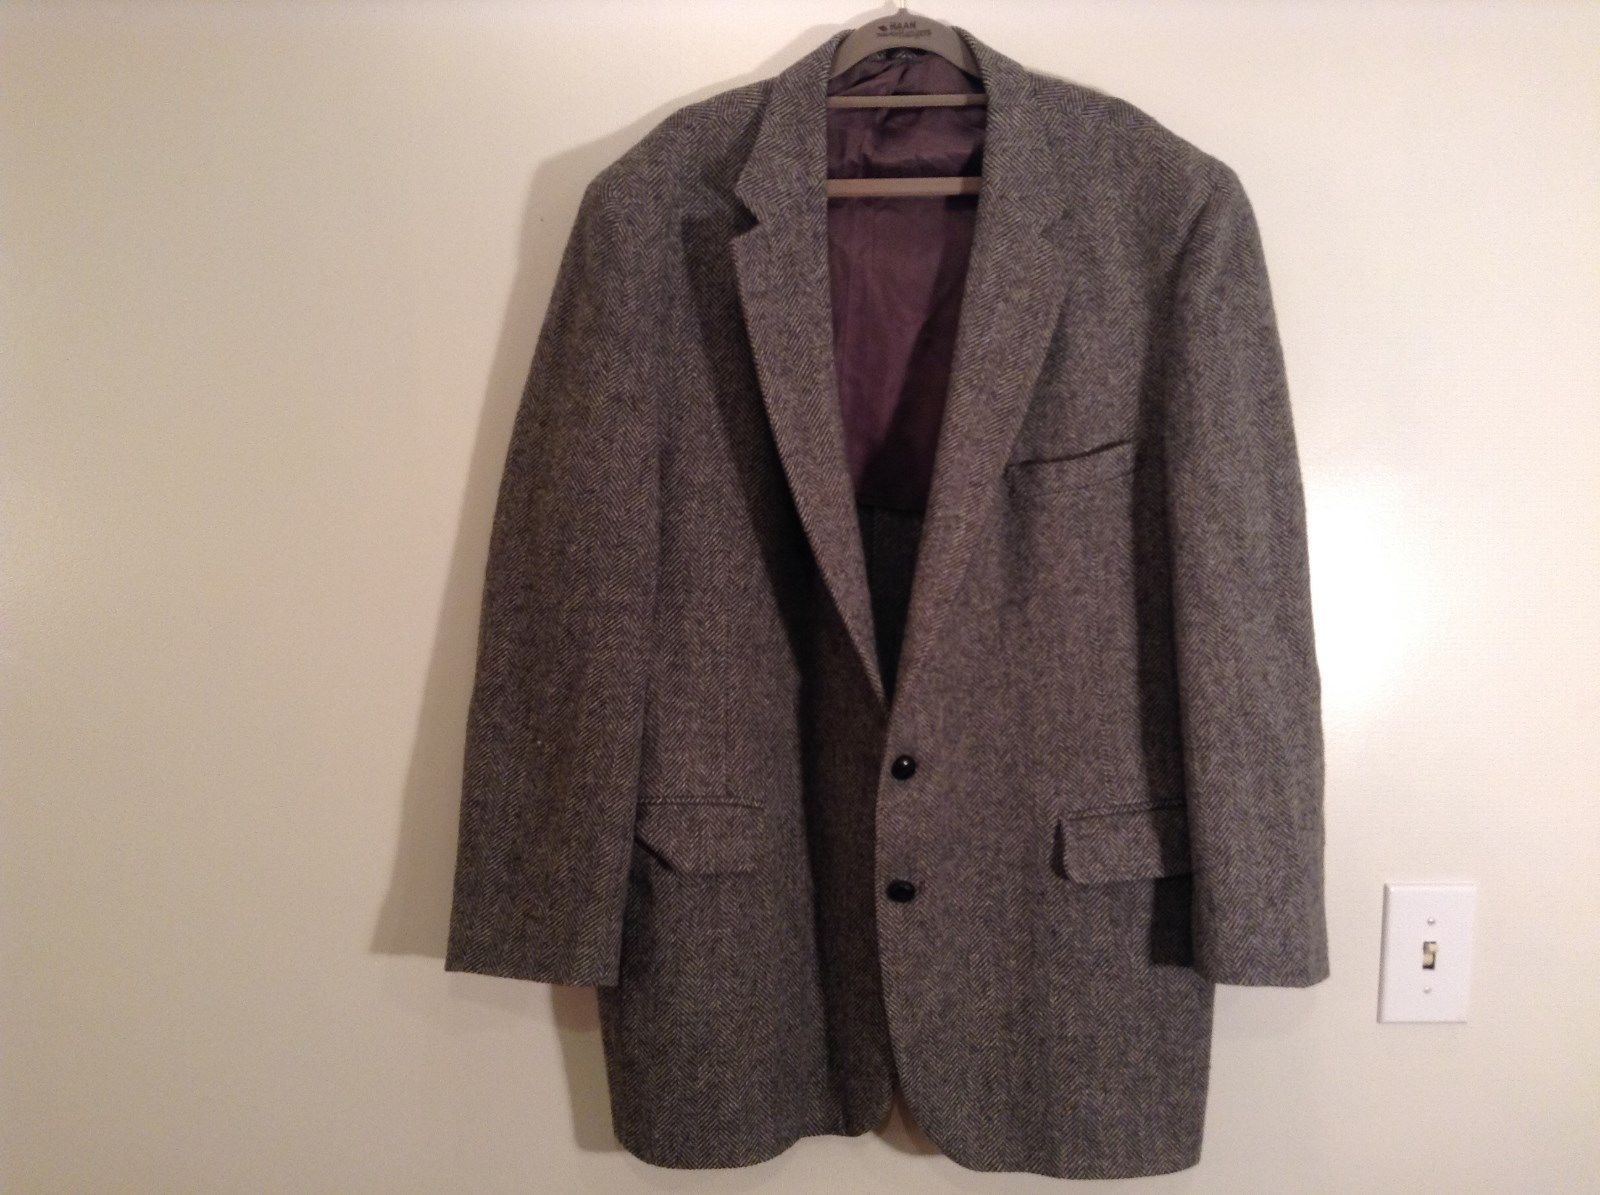 Stafford Wool Blazer Suit Coat 2 Outside Pockets 2 Inside Pockets High Quality